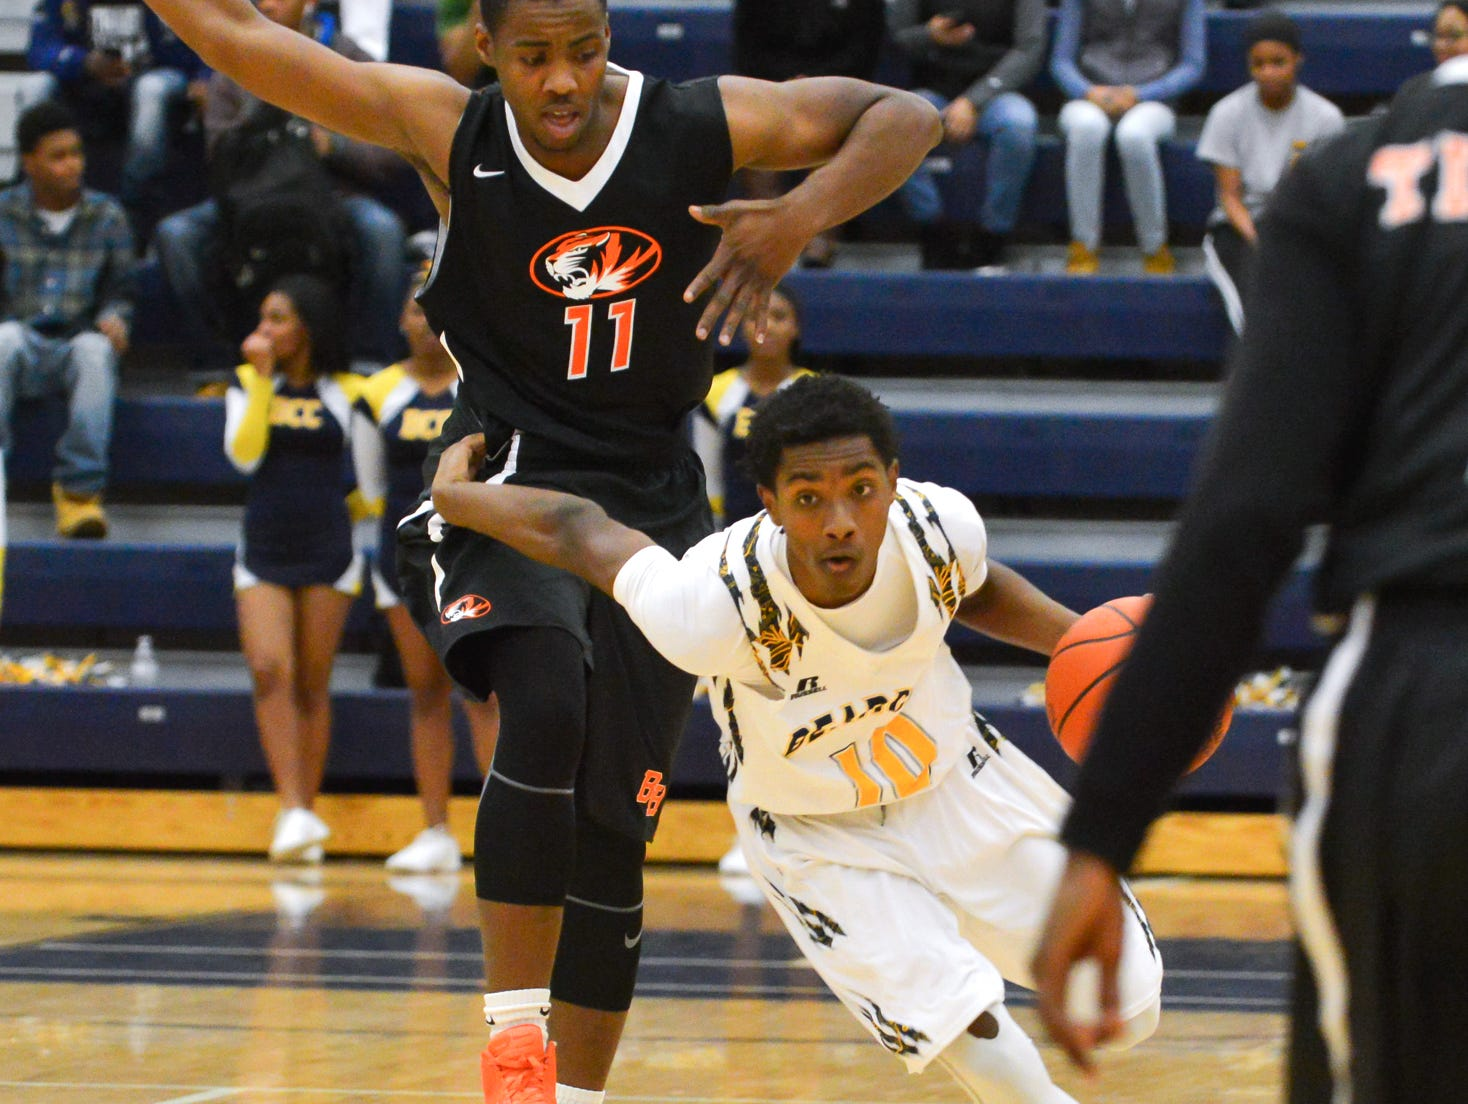 Central's Jahmiel Wade in game action Tuesday night.